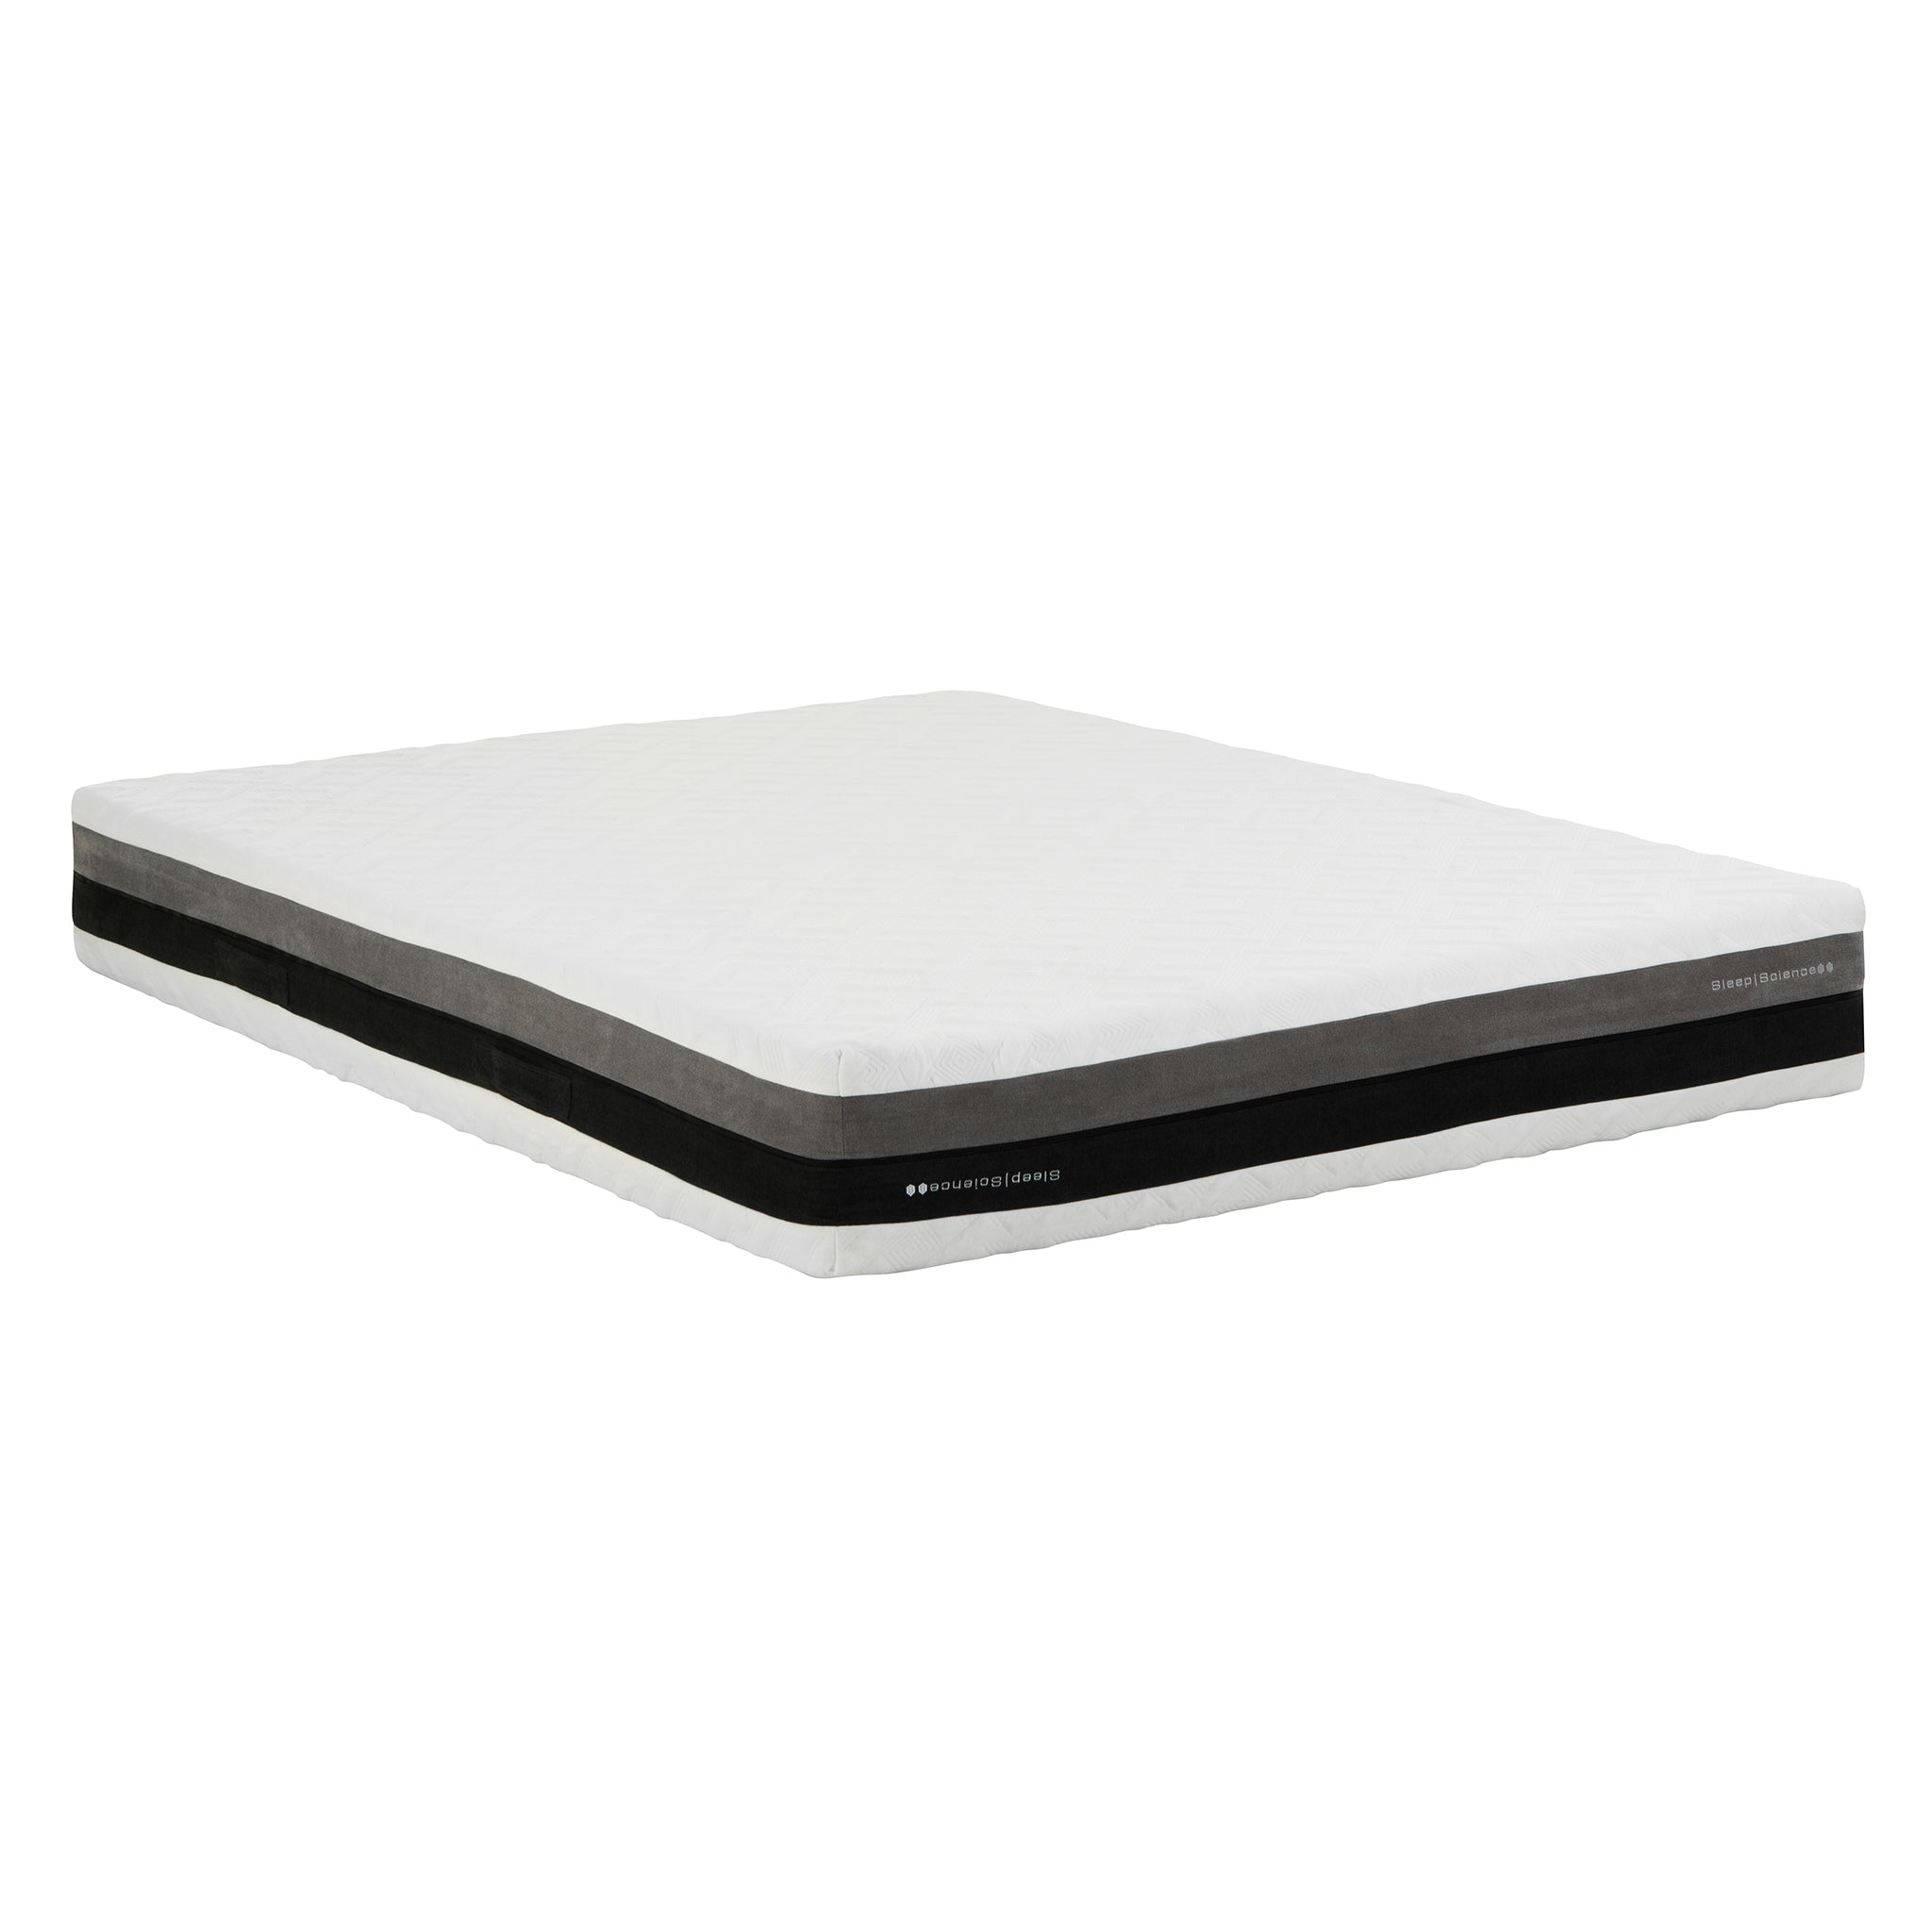 "10"" IFLIP SOLANO 2-SIDED GEL-INFUSED MEMORY FOAM MATTRESS"